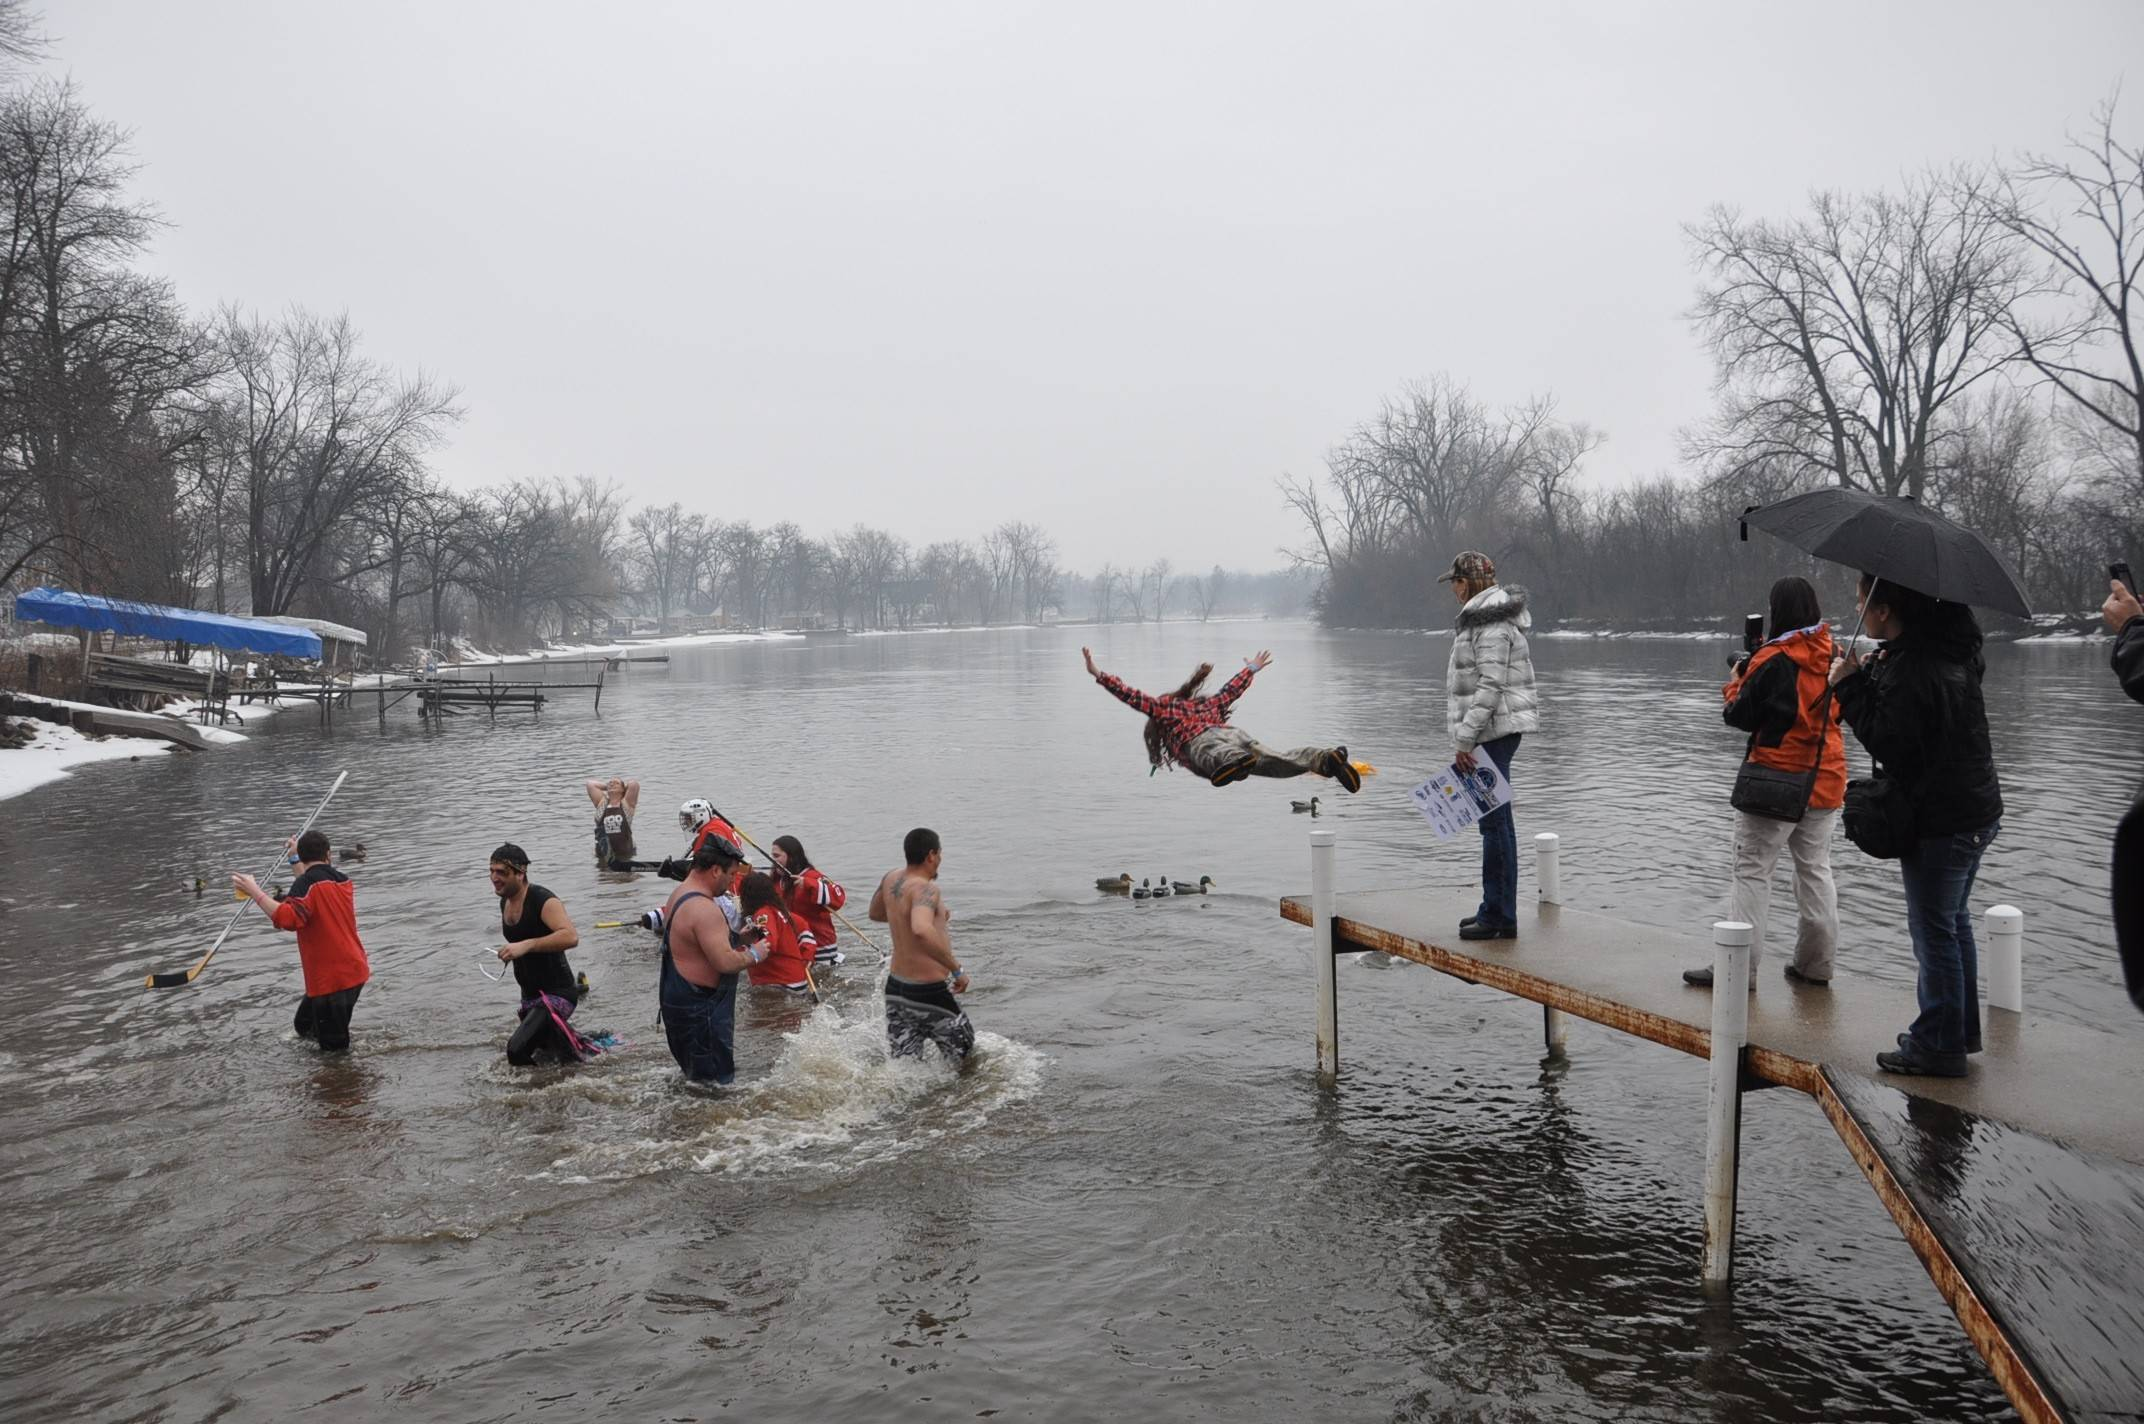 The Fox River Shiver features costumed divers for chairity at Broken Oar Beach in Port Barrington on Sunday, March 9.